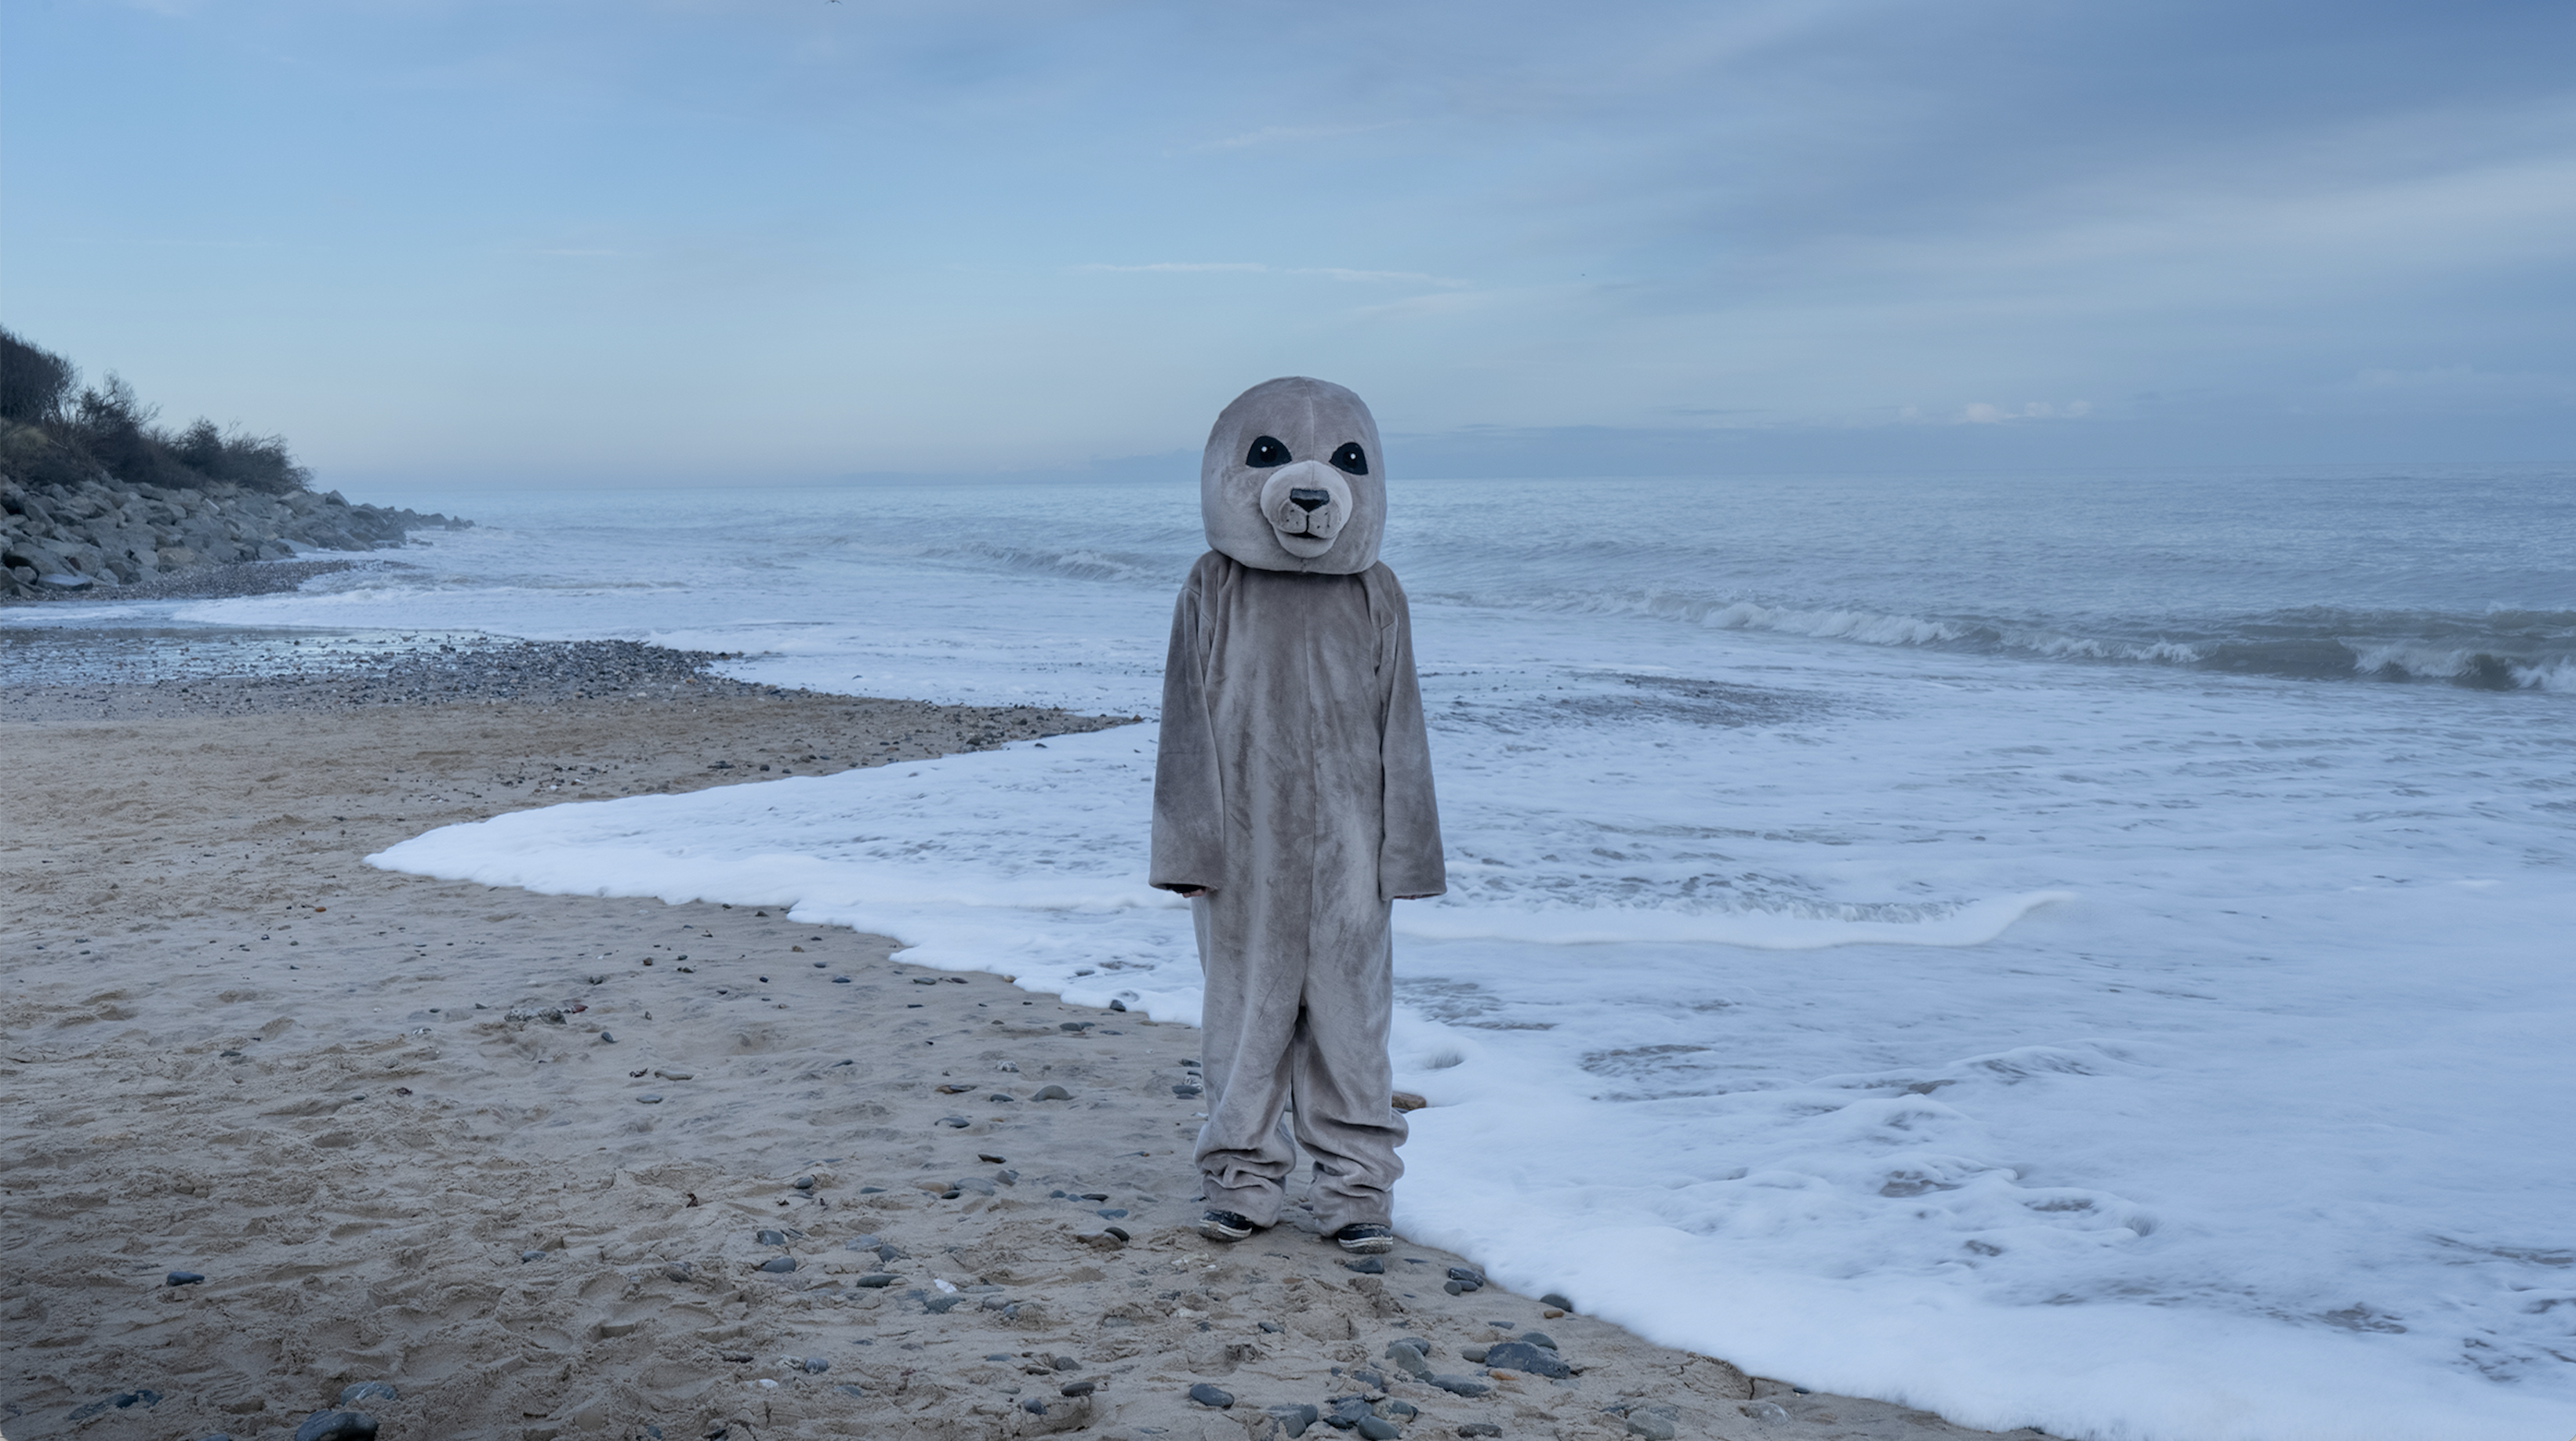 Still from the film From the Wild Sea (2021) Robin Petré